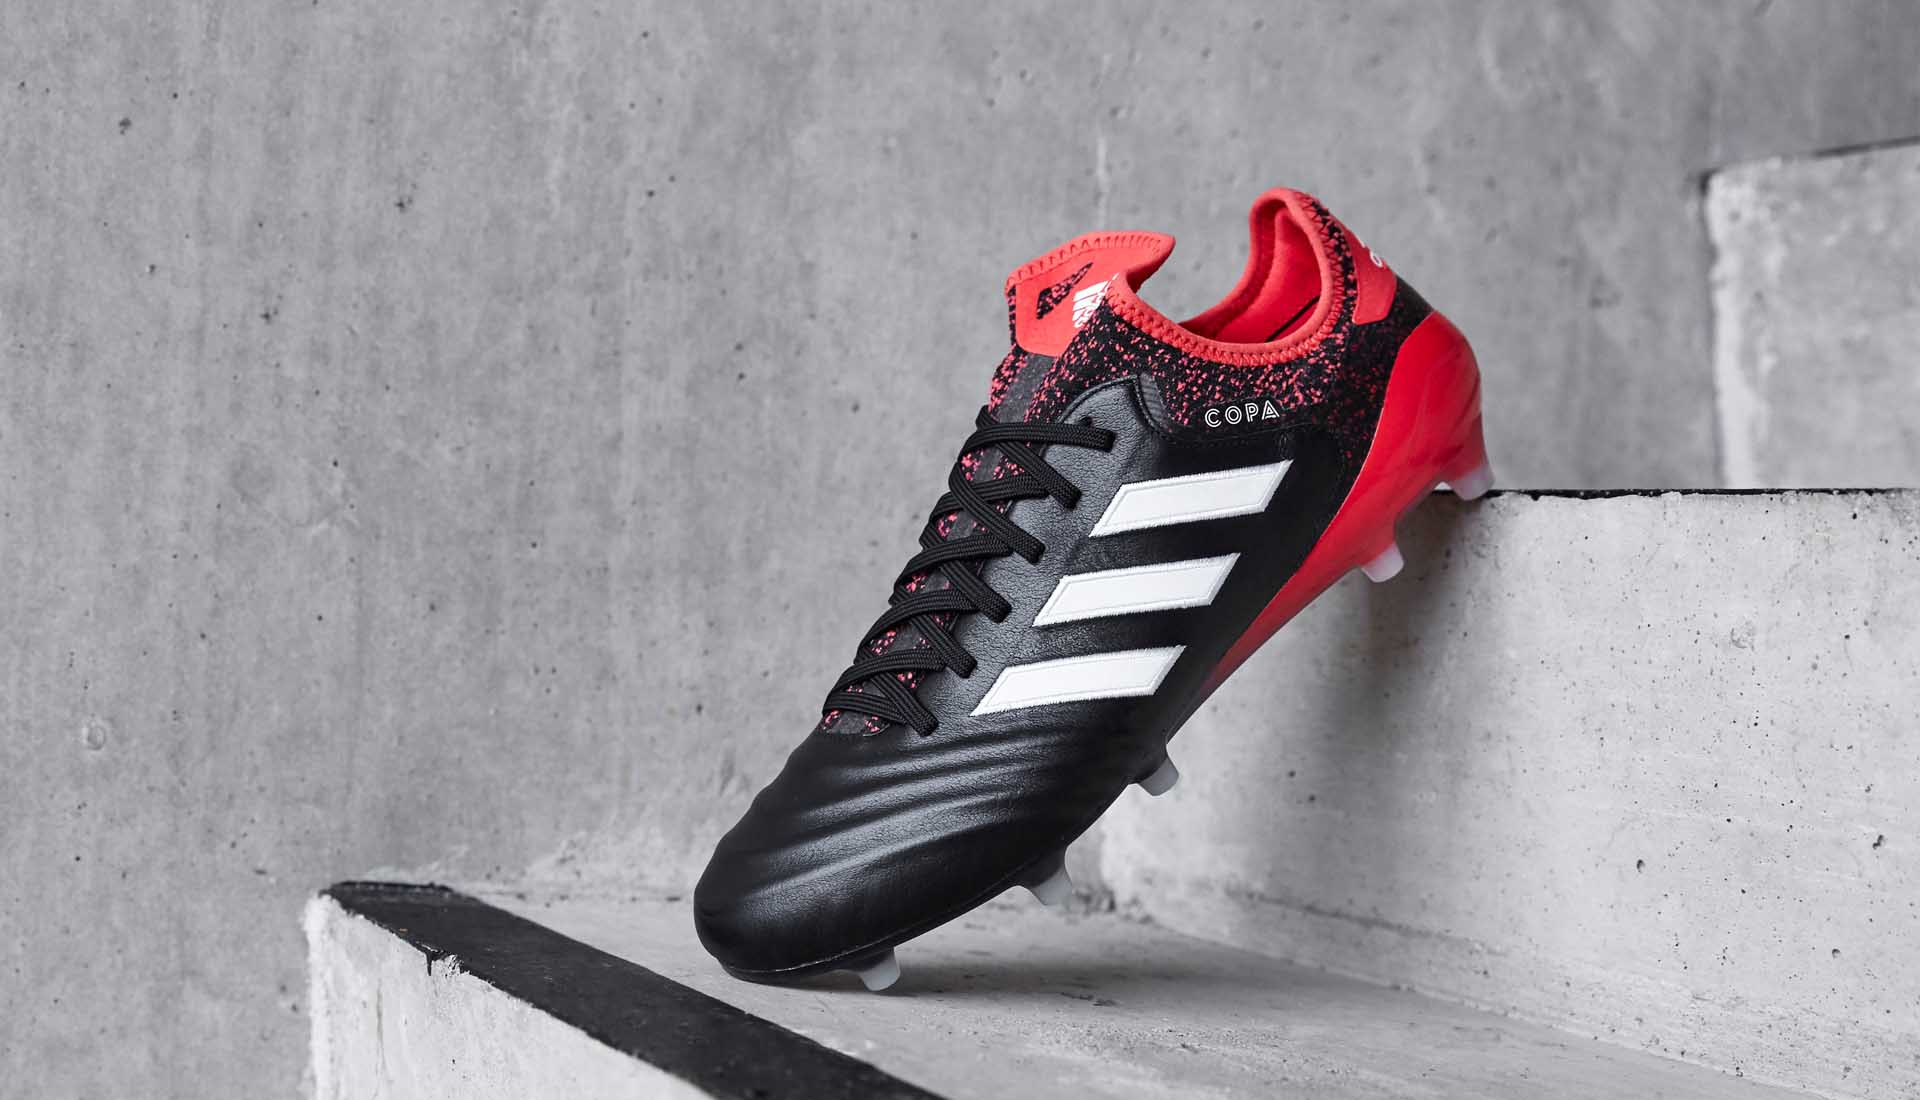 d22e01e94 adidas Football COPA 18.1 Q A With Gaetan Saint-Andre - SoccerBible.